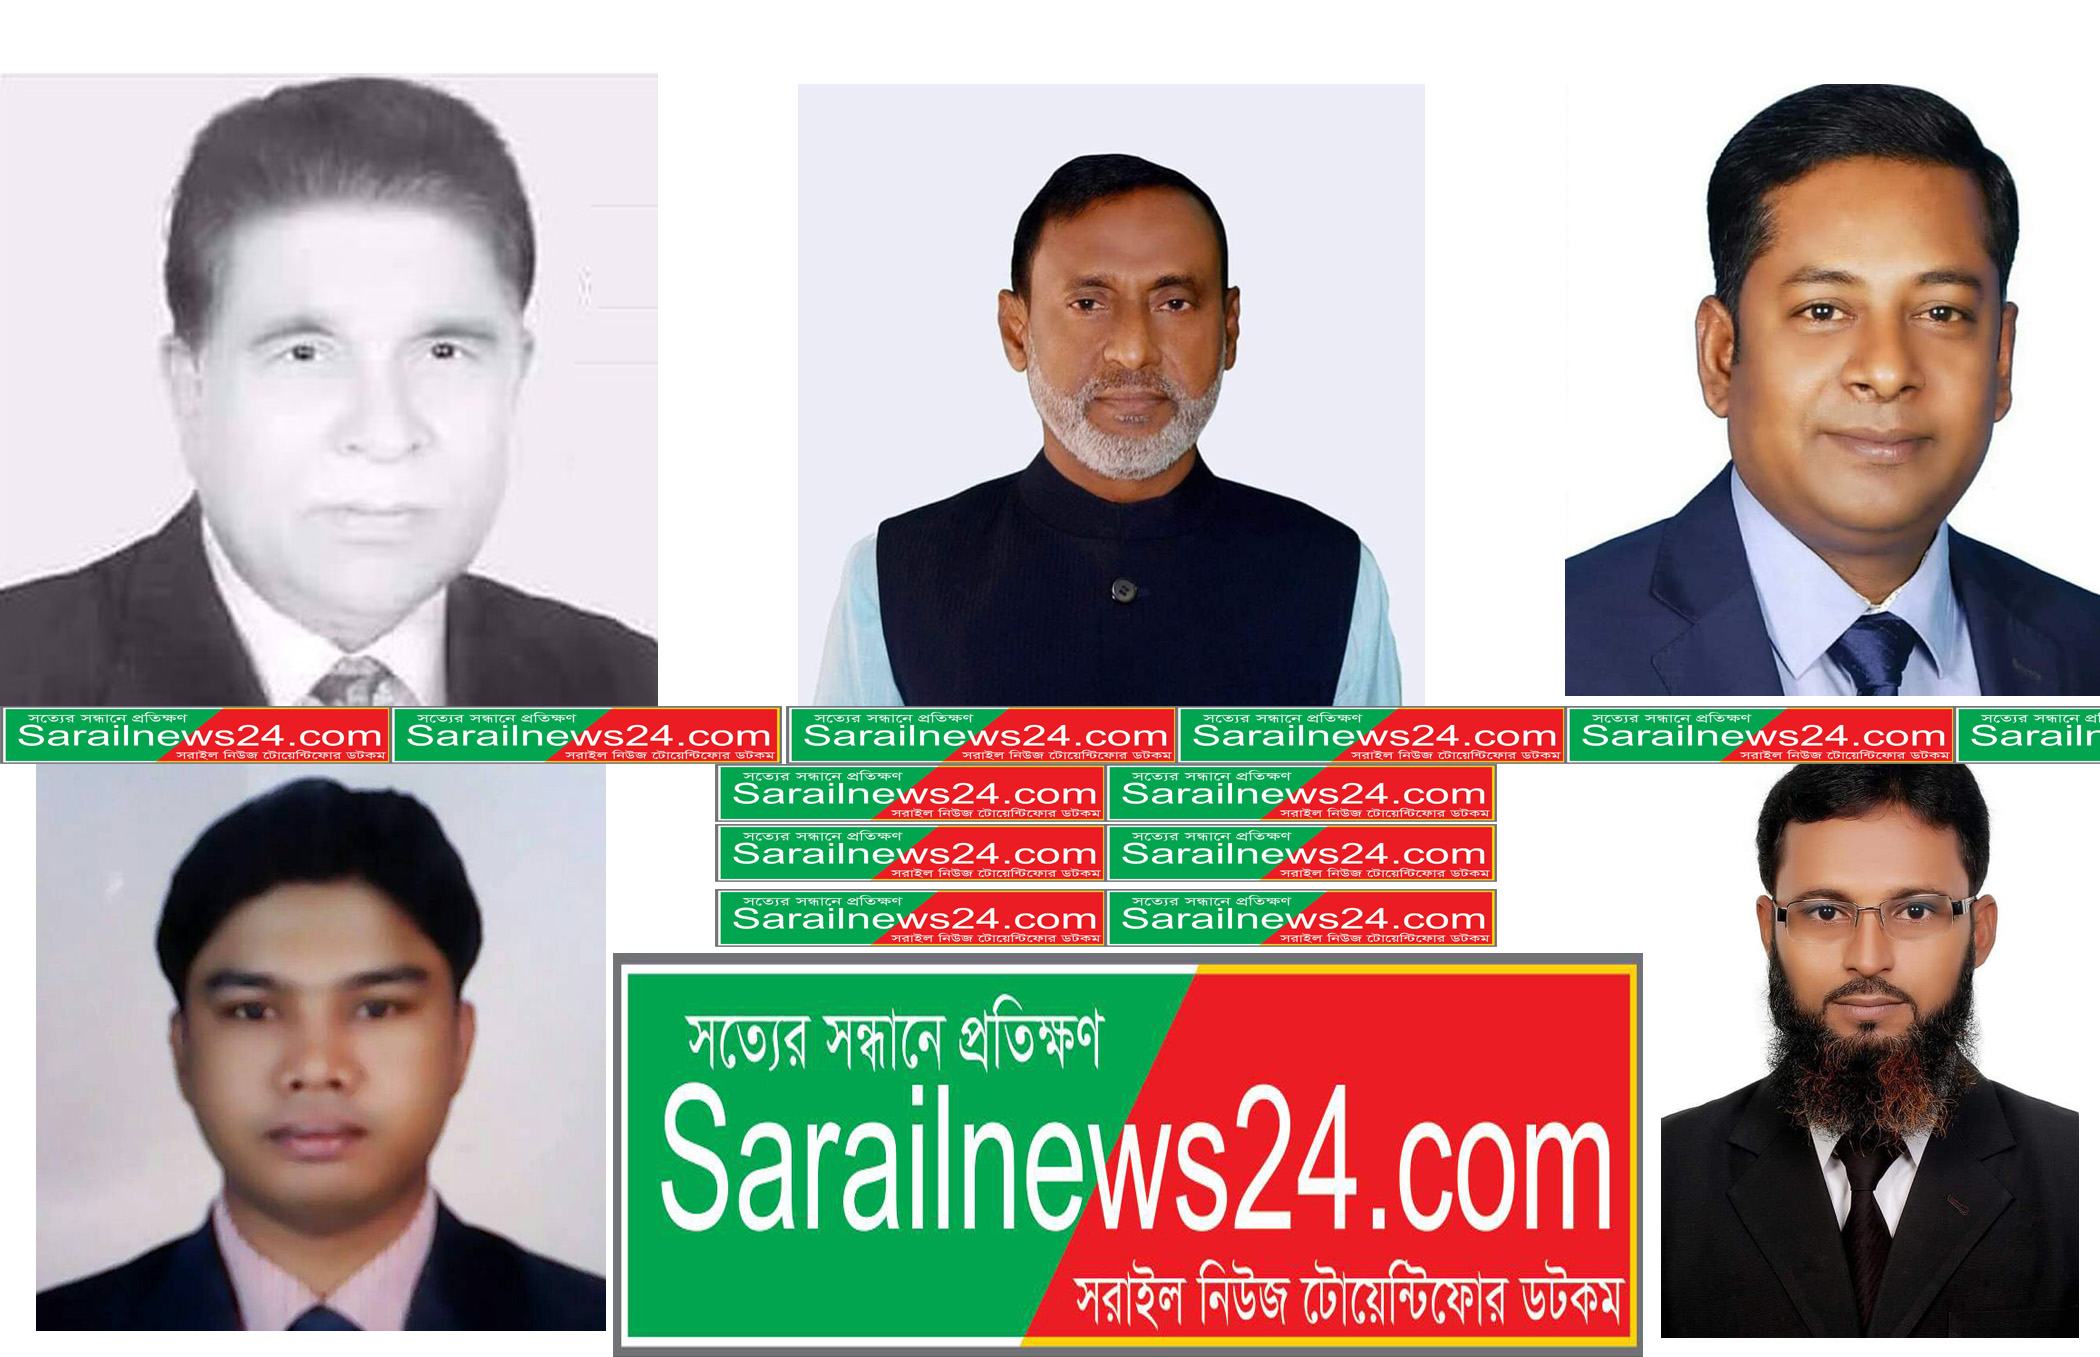 Up election pic